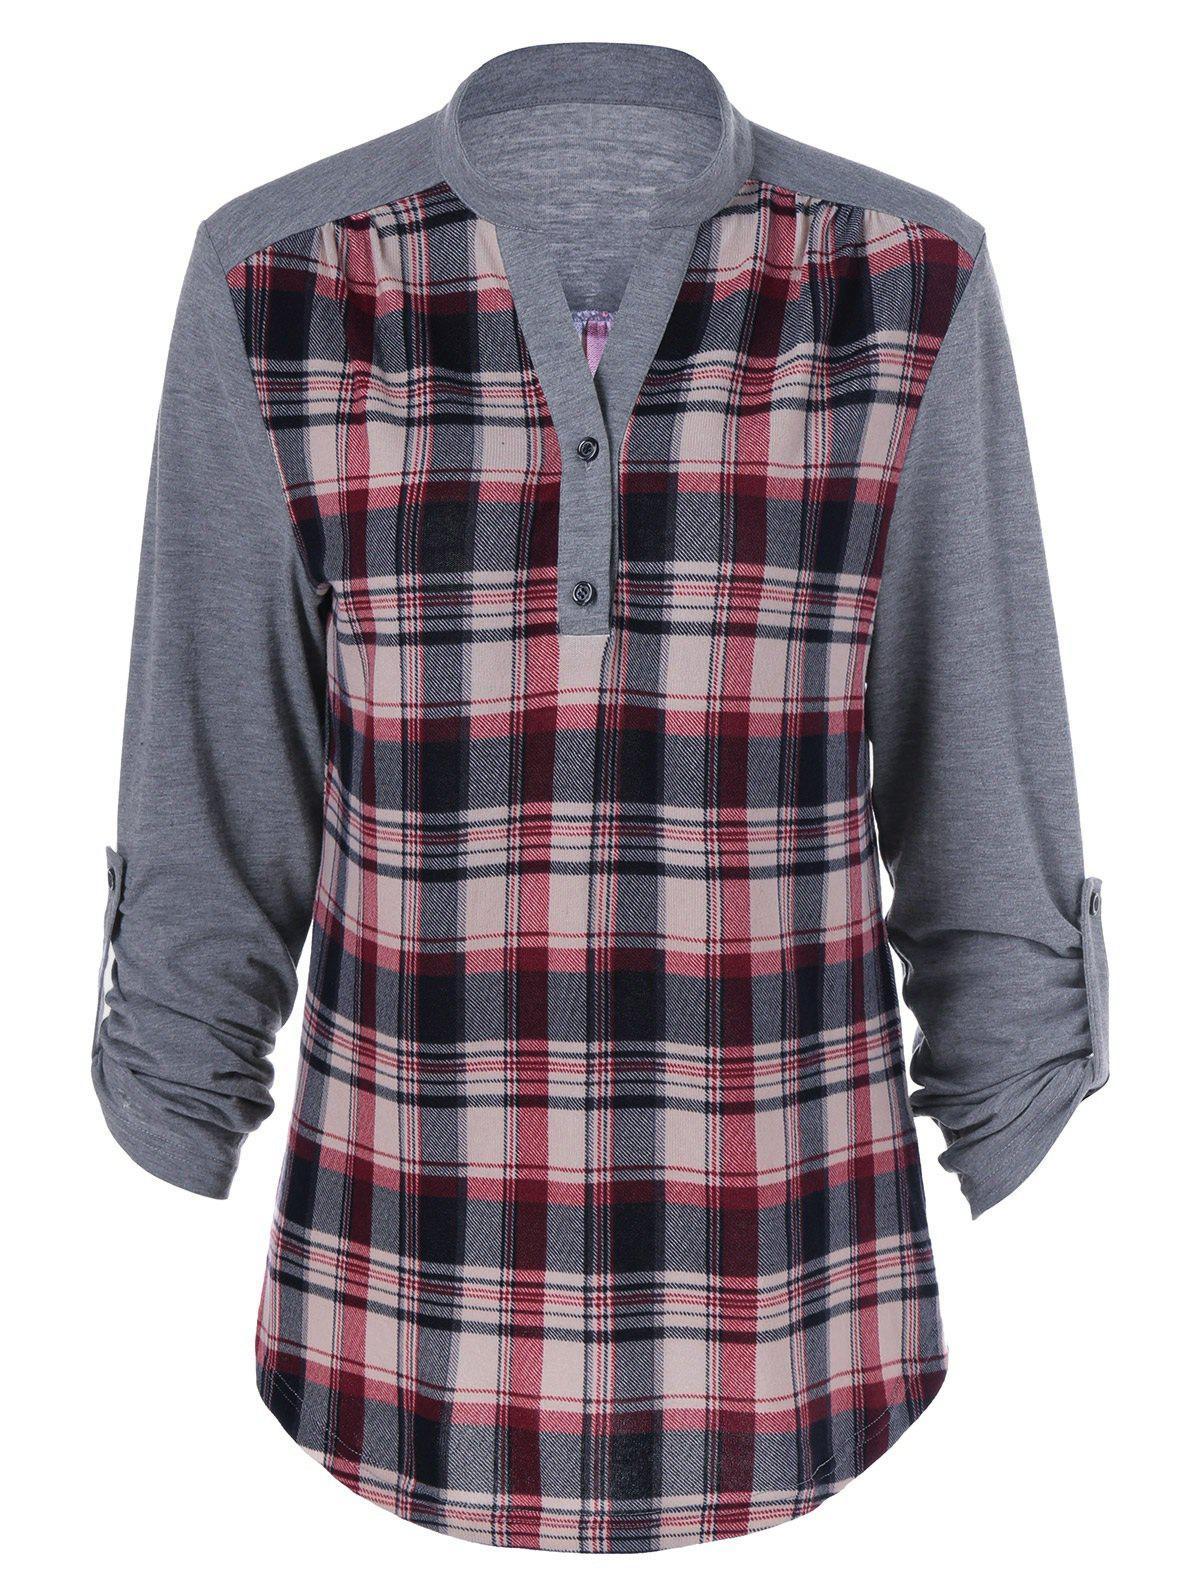 Plus Size Split-Neck Plaid Trim BlouseWOMEN<br><br>Size: 5XL; Color: GRAY; Material: Polyester; Shirt Length: Long; Sleeve Length: Full; Collar: V-Neck; Style: Streetwear; Season: Fall,Spring; Pattern Type: Plaid; Weight: 0.3700kg; Package Contents: 1 x Blouse;